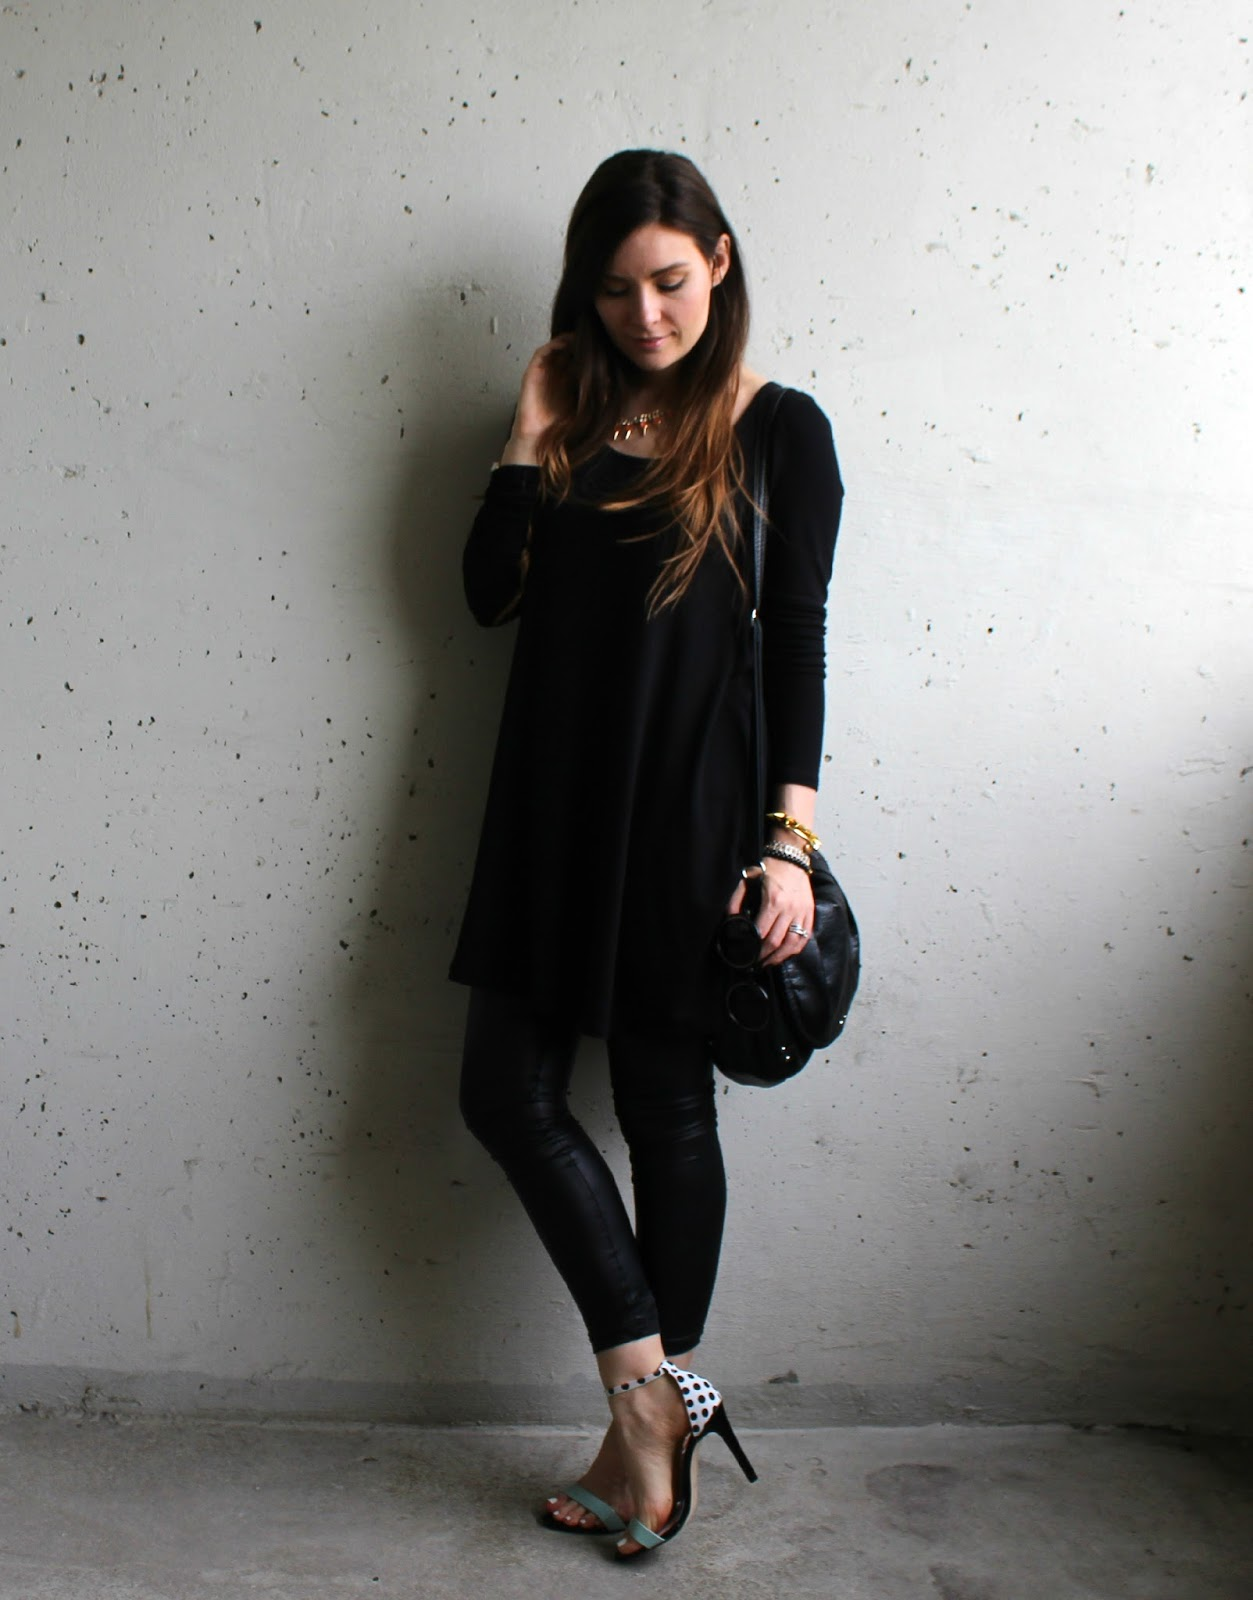 Strappy heels, black cotton dress, black leather pants